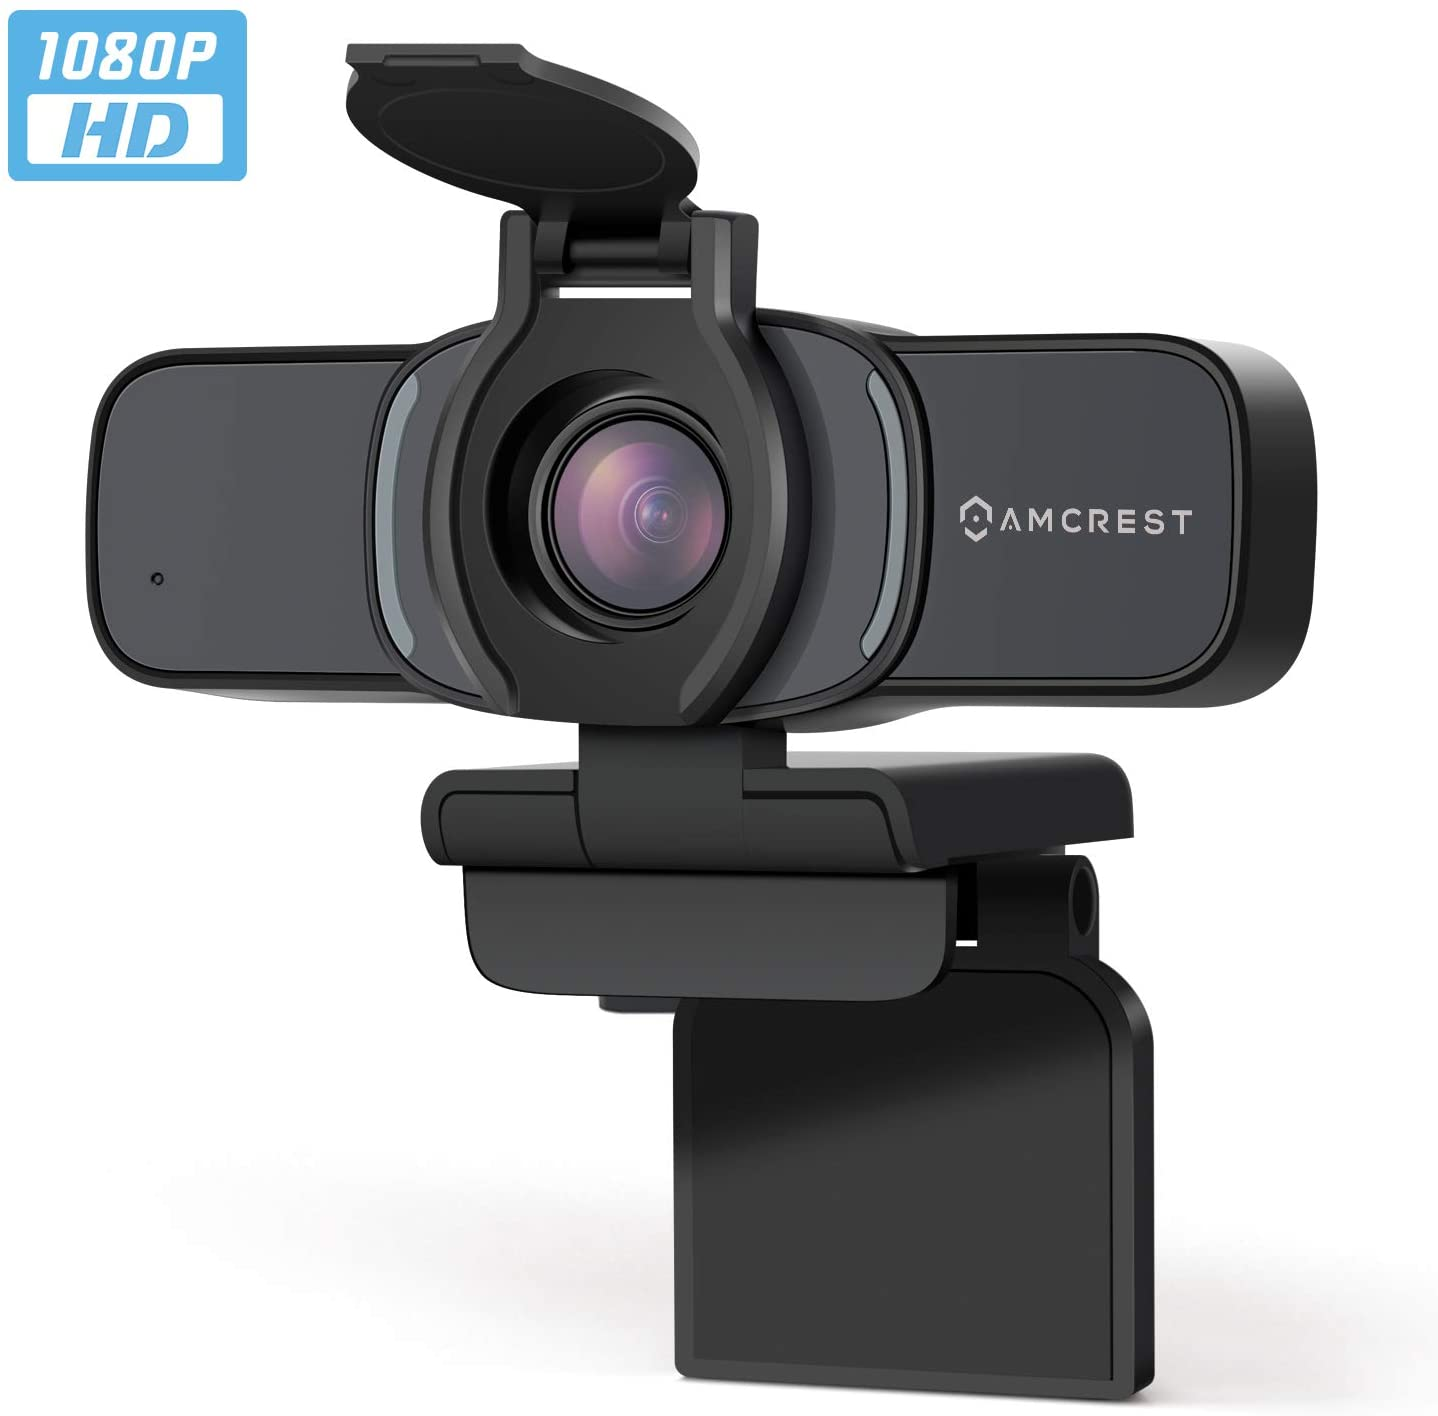 Amcrest 1080P Webcam with Microphone & Privacy Cover, Web Cam USB Camera, Computer HD Streaming Webcam for PC Desktop & Laptop w/Mic, Wide Angle Lens & Large Sensor for Superior Low Light (AWC201-B)